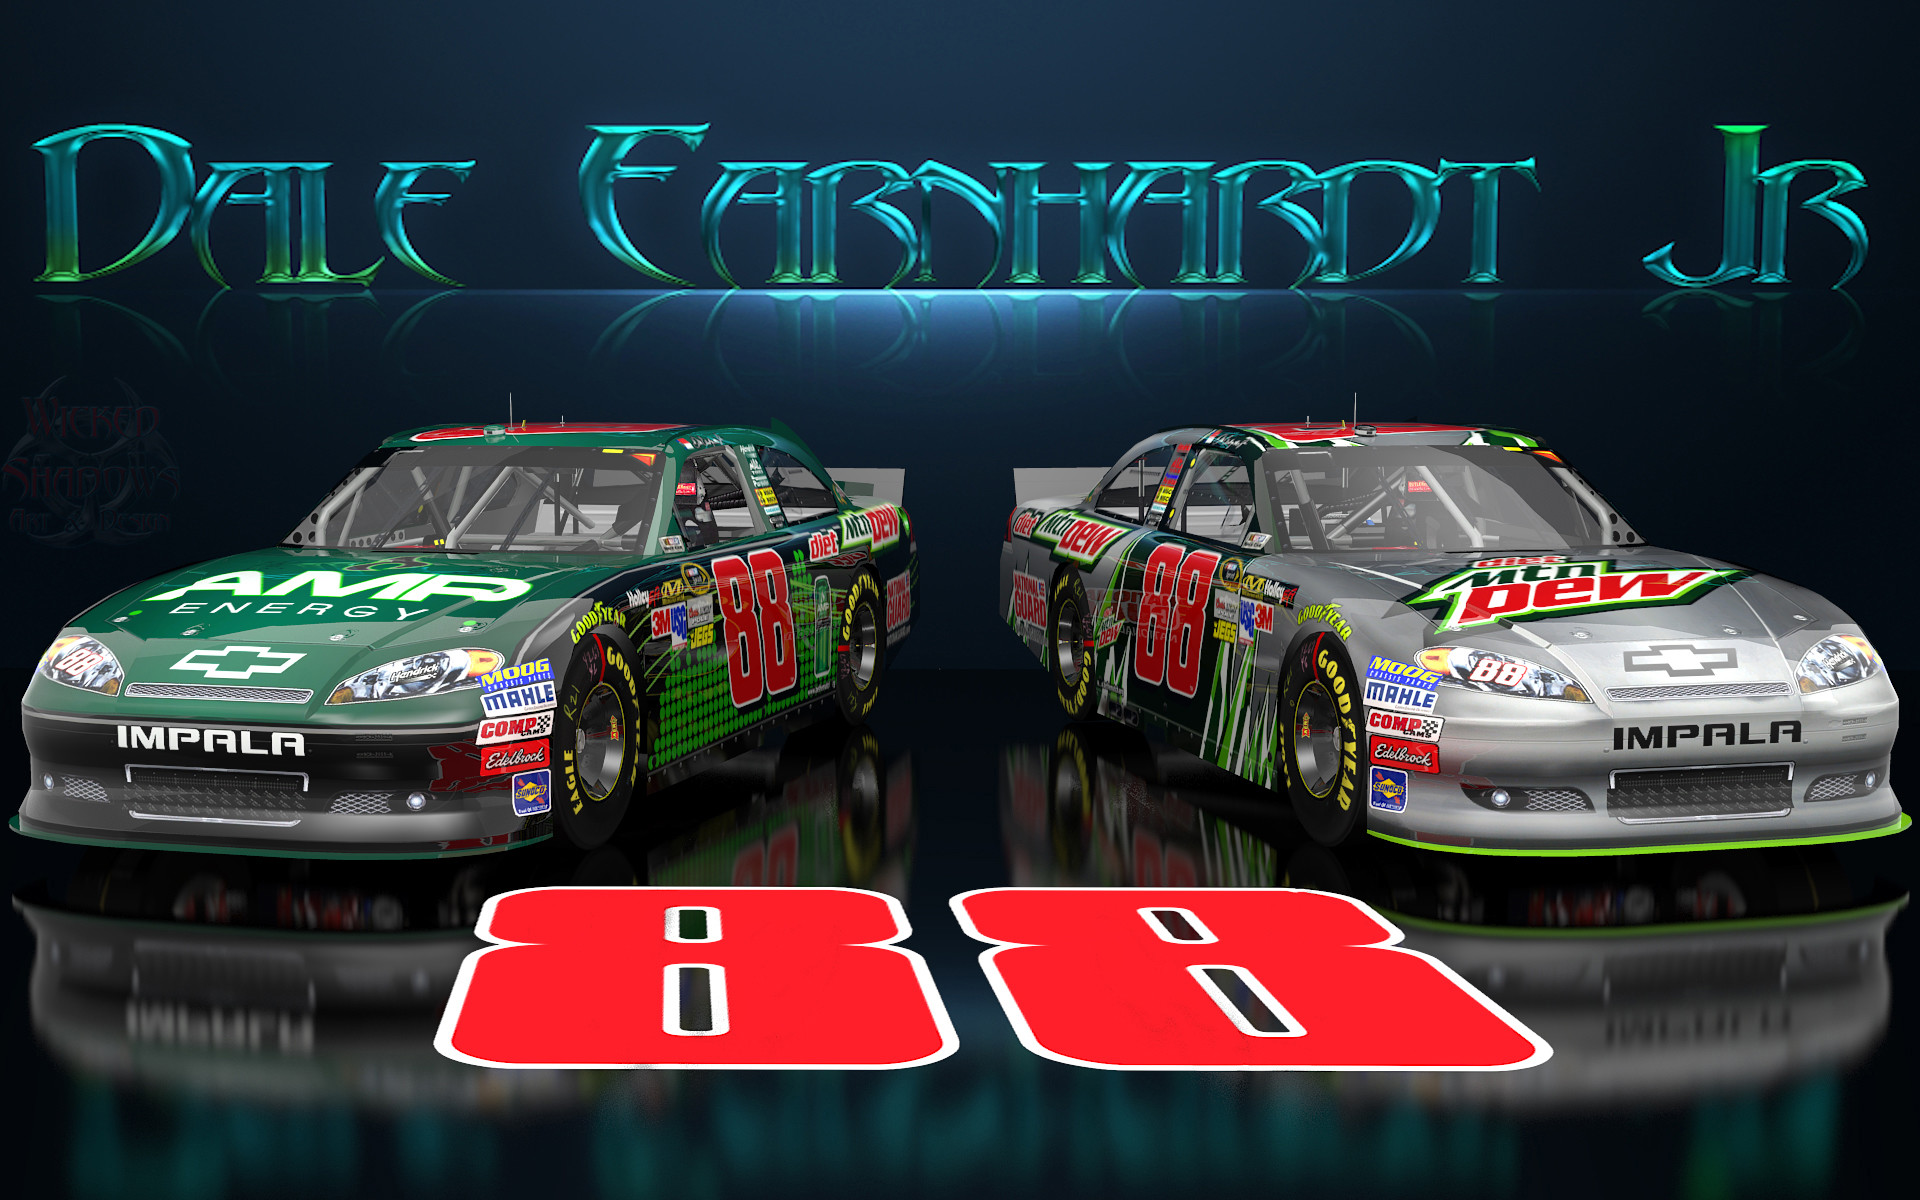 /dale-earnhardt-jr-wicked-text-amp-